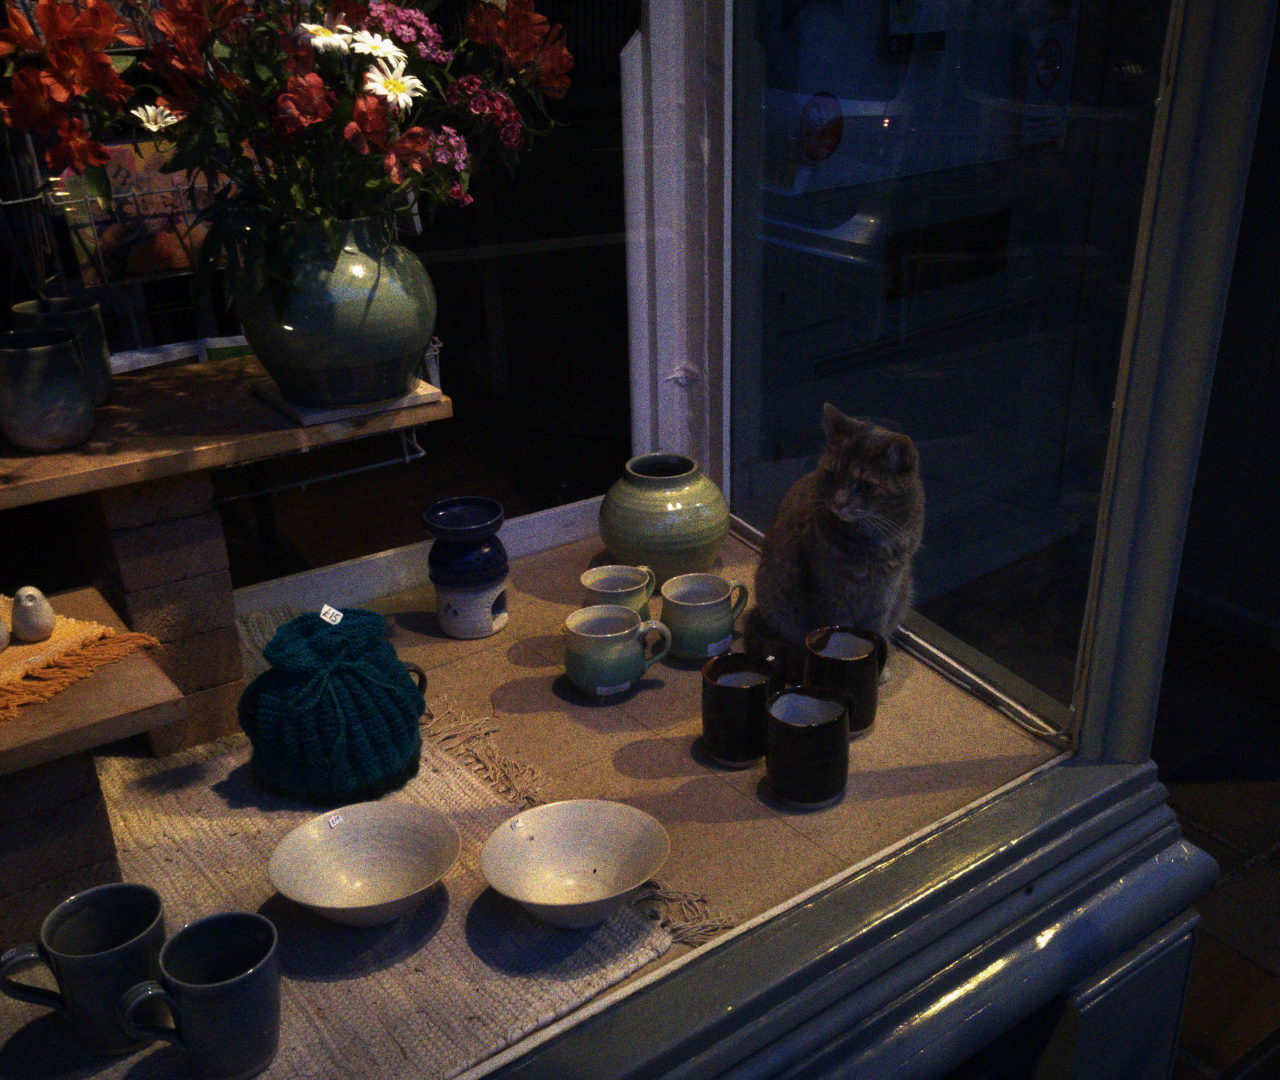 Is this cat looking after the shop on behalf of the owner at night?